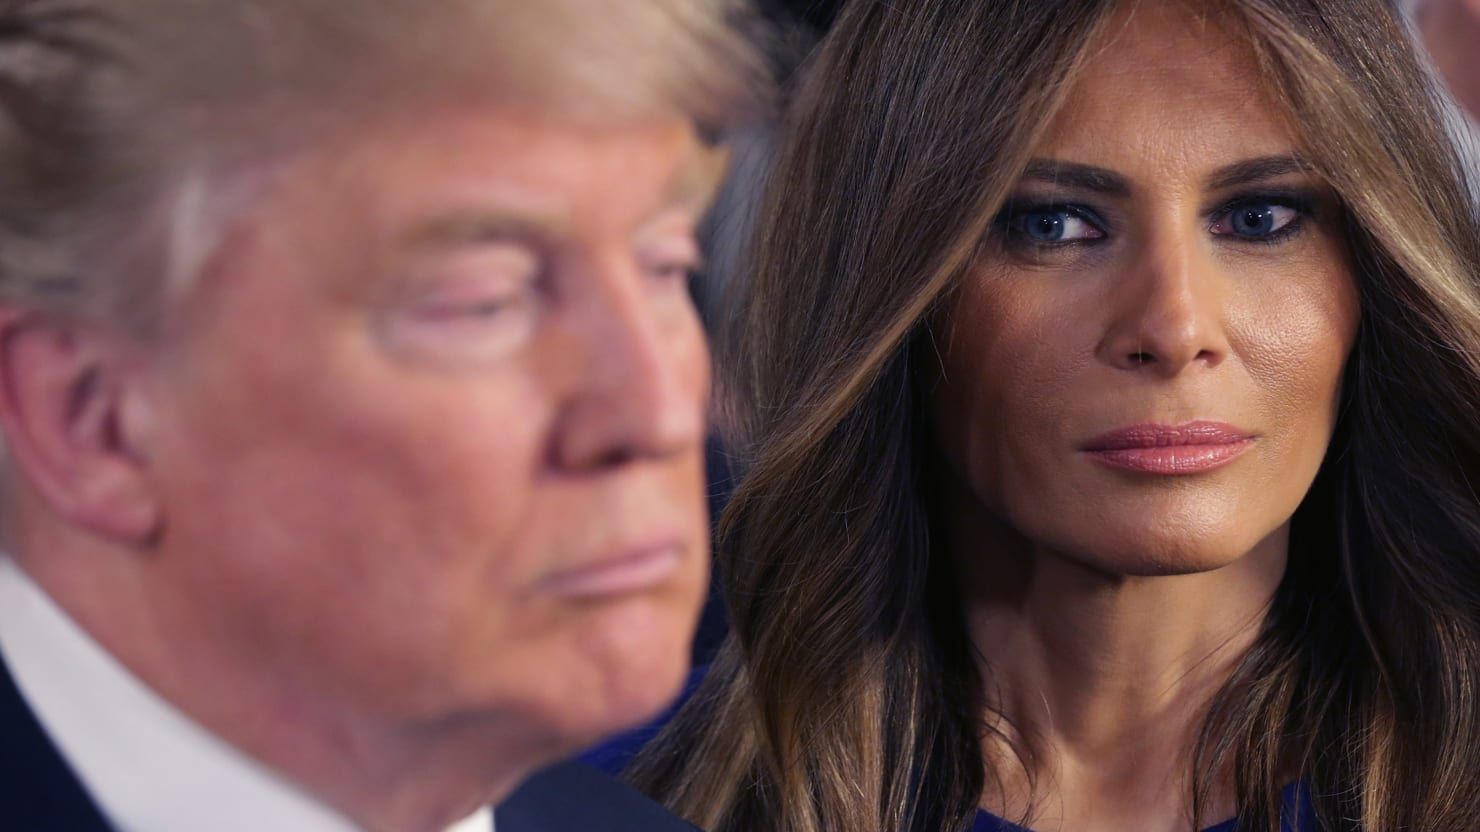 thedailybeast.com - Malcolm Jones - Is Melania Secretly the Smartest Trump?